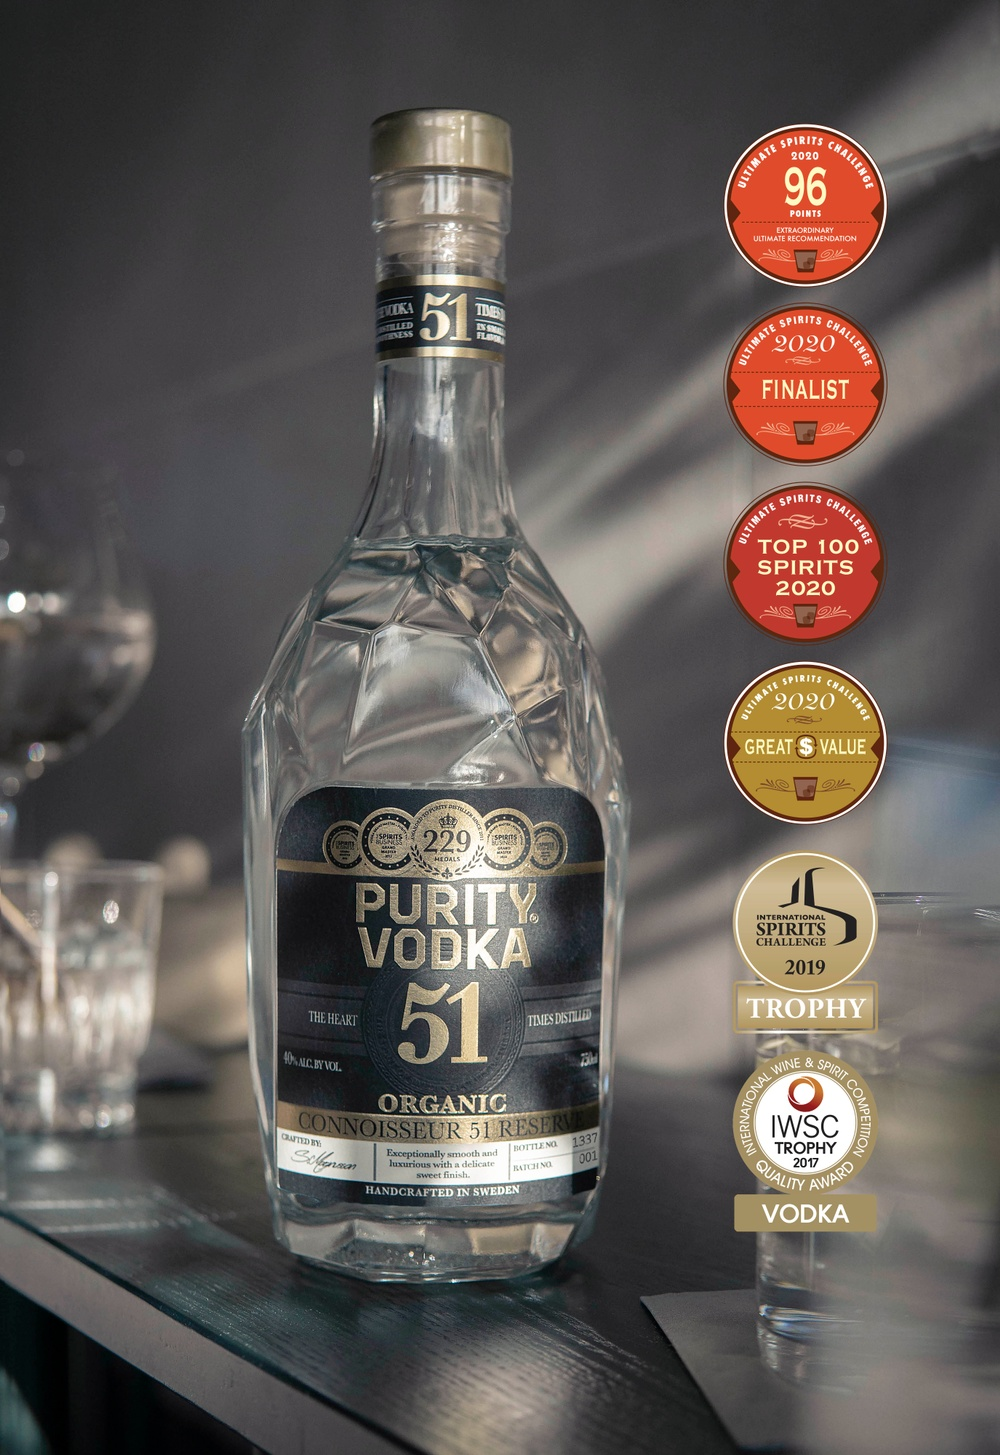 Purity Connoisseur 51 Reserve, Best Tasting Organic Spirit in the World.